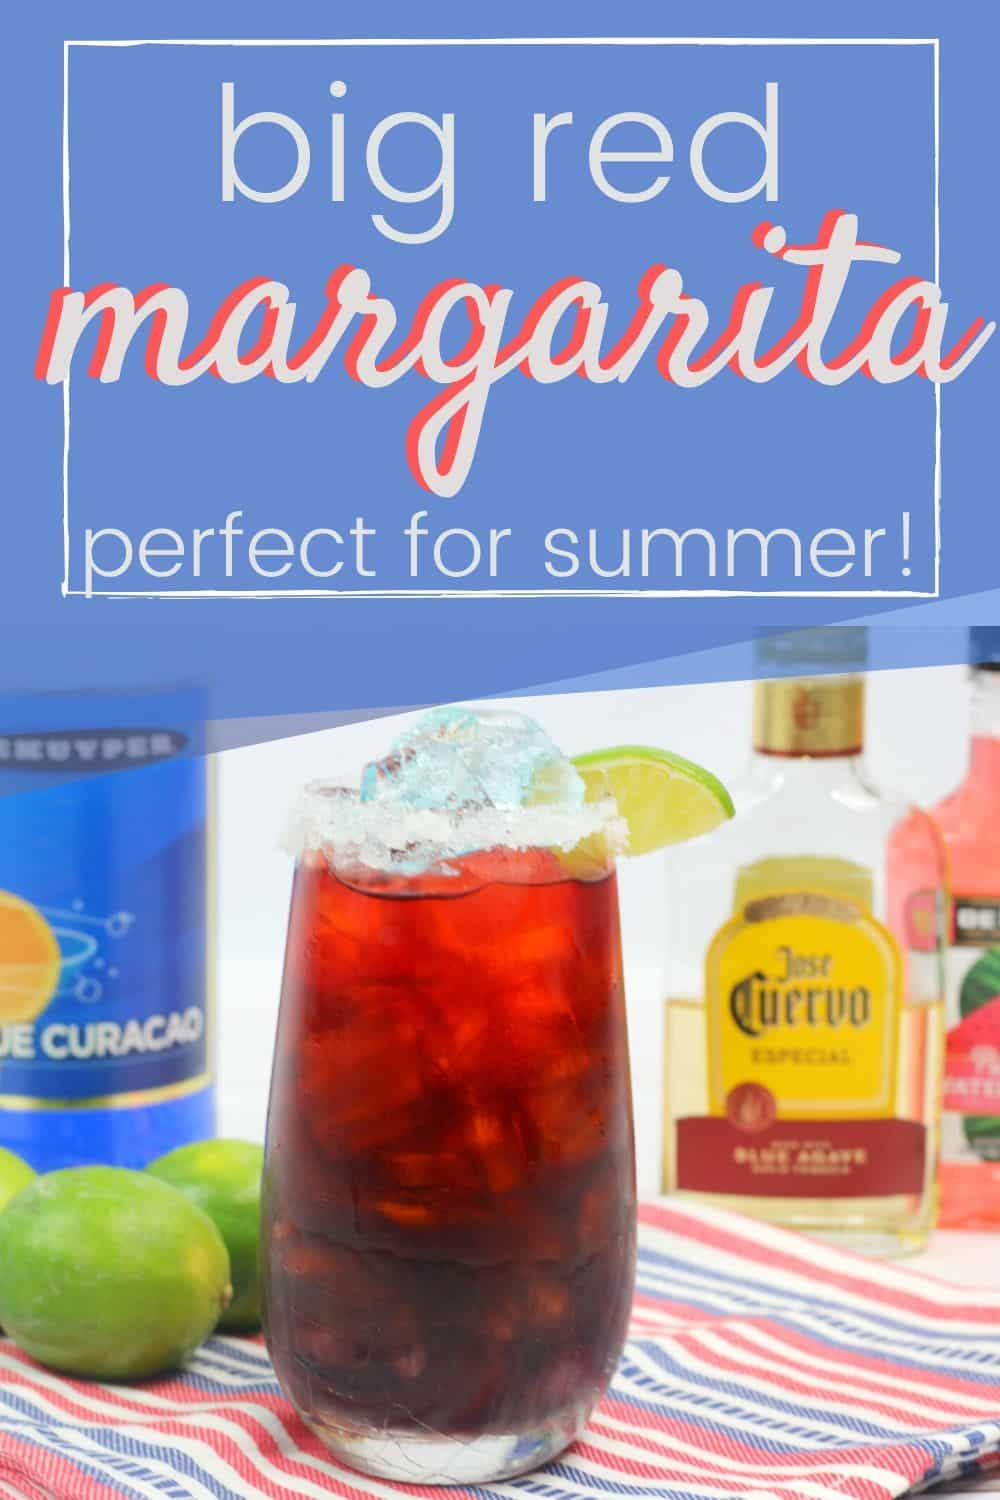 A red cocktail with bottles of alcohol with text: big red margarita perfect for summer.